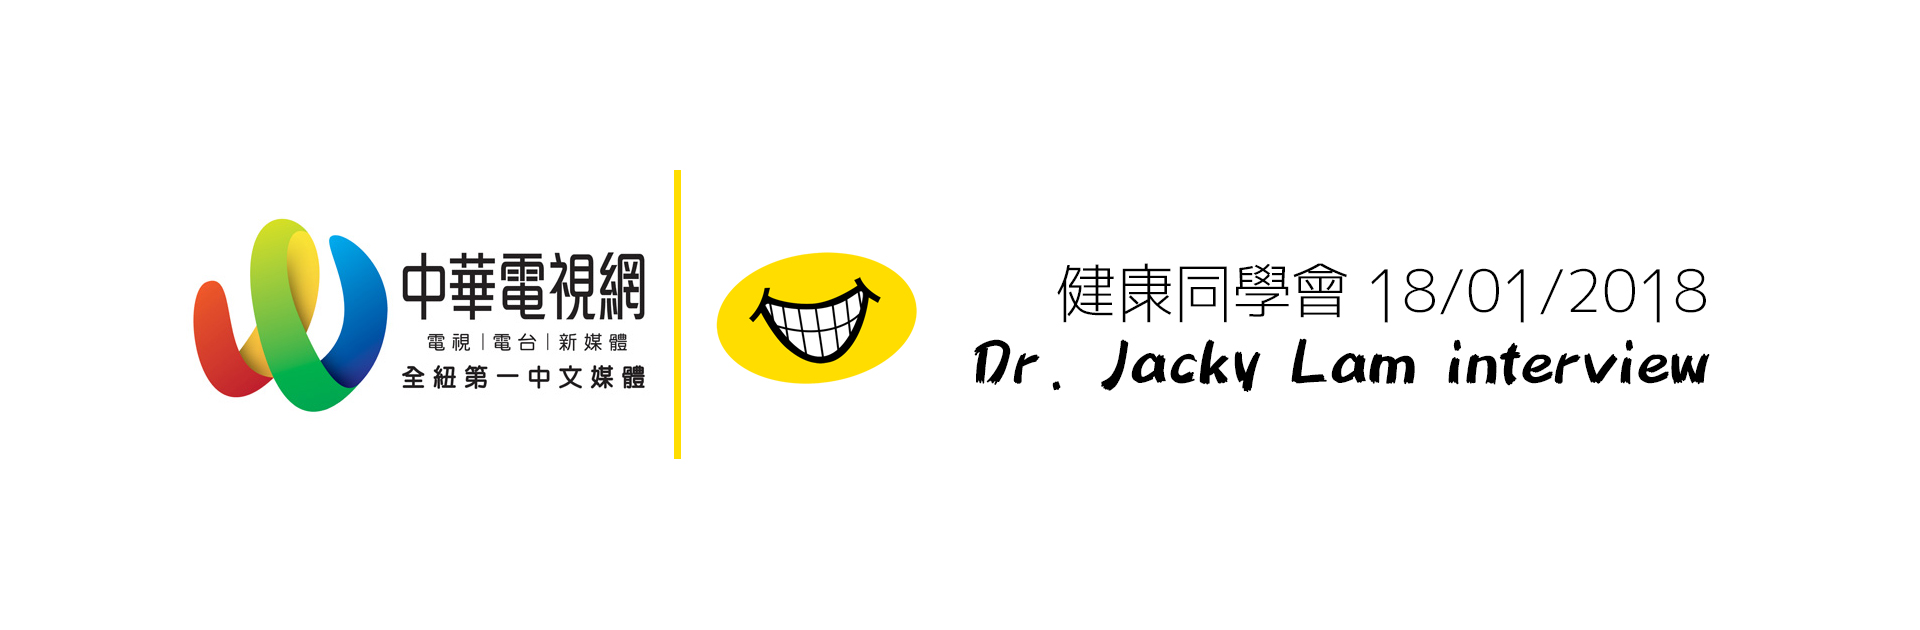 Healthy Teeth and Mouth Care – Dr. Jacky Lam TV Interview